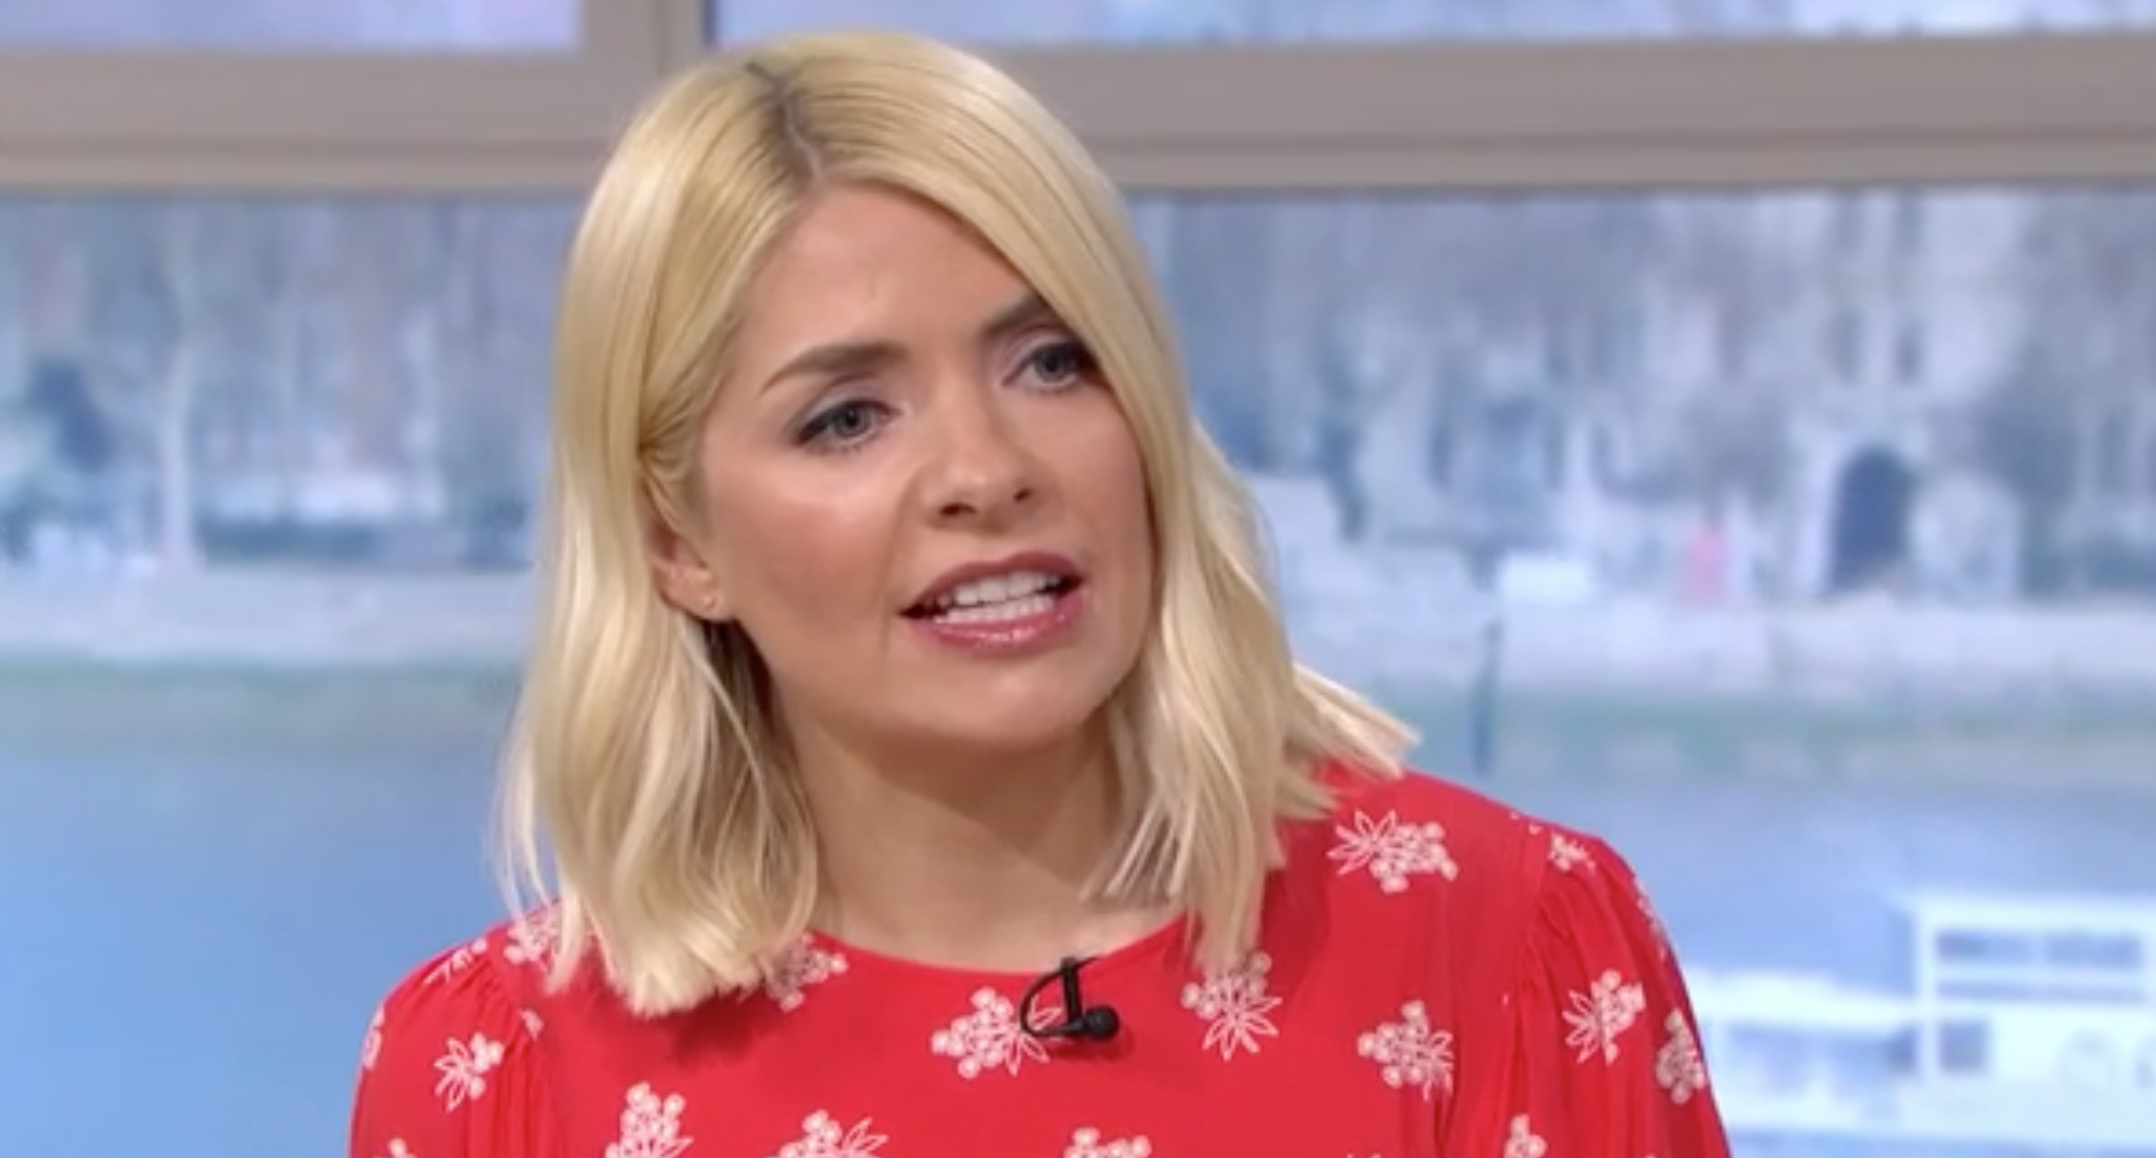 Holly Willoughby reveals fears for her mum amid coronavirus outbreak